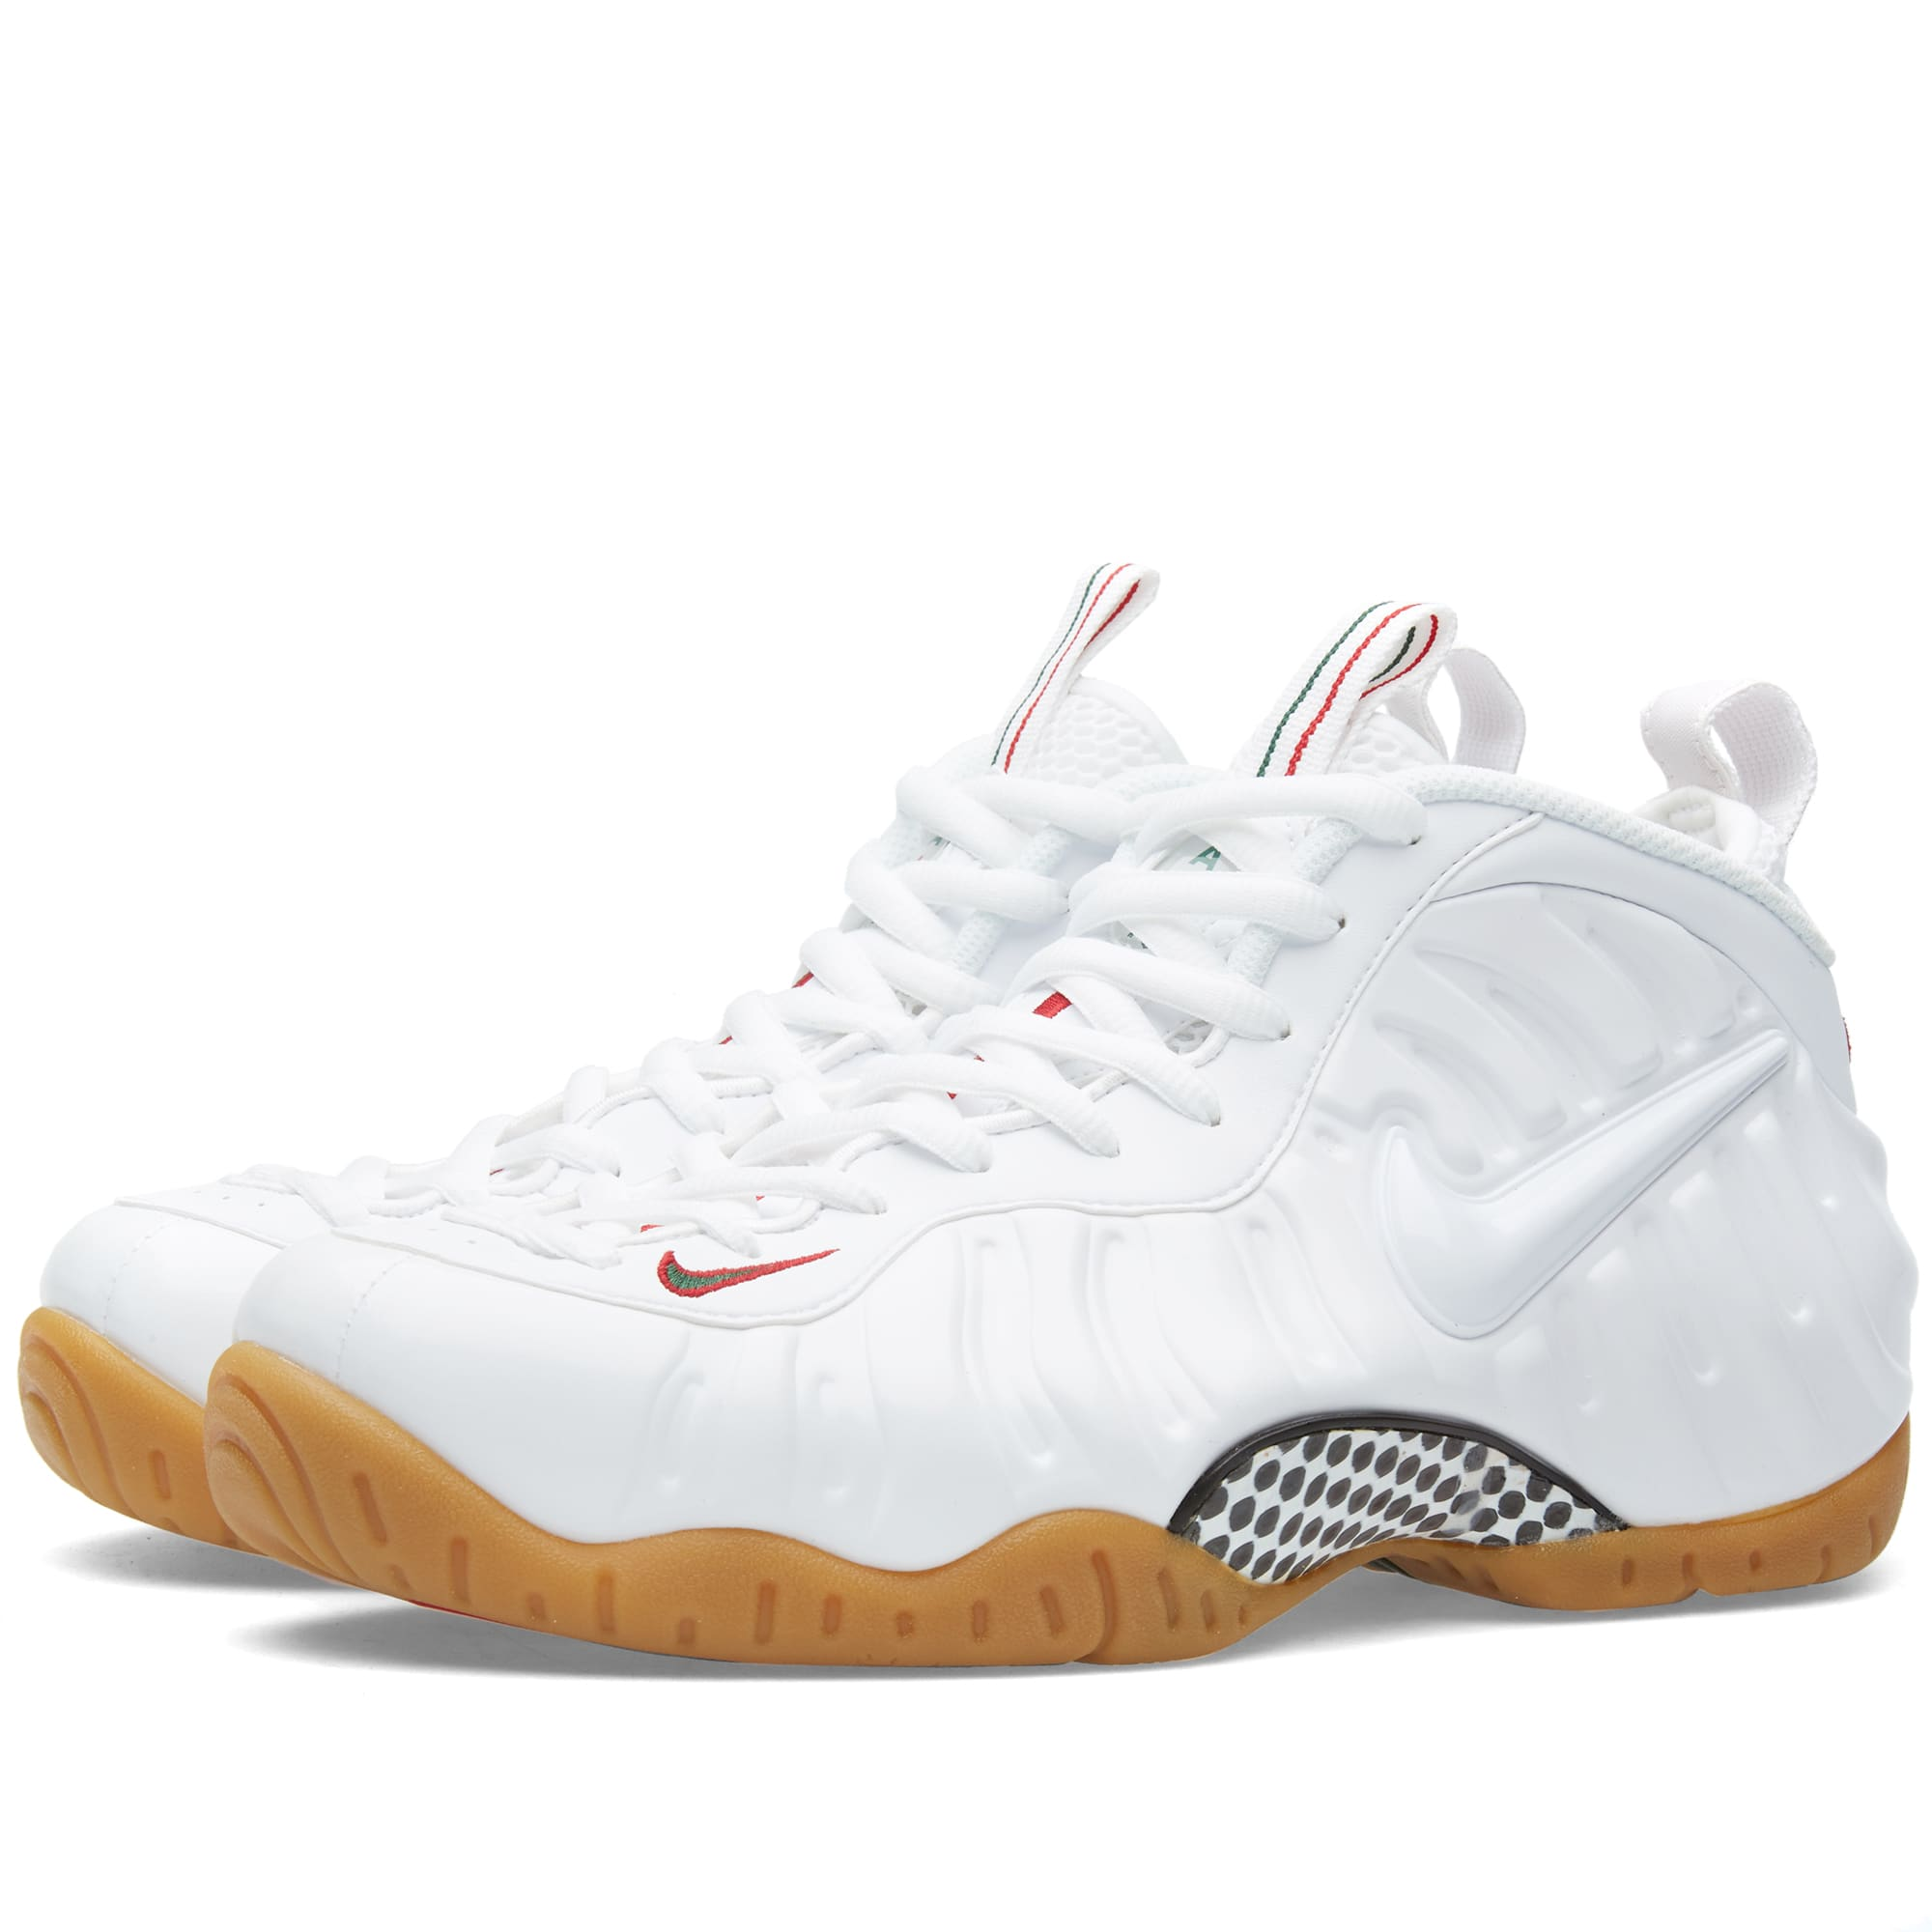 finest selection c86ae 7518f Nike Air Foamposite Pro White, Gym Red   Gorge Green   END.